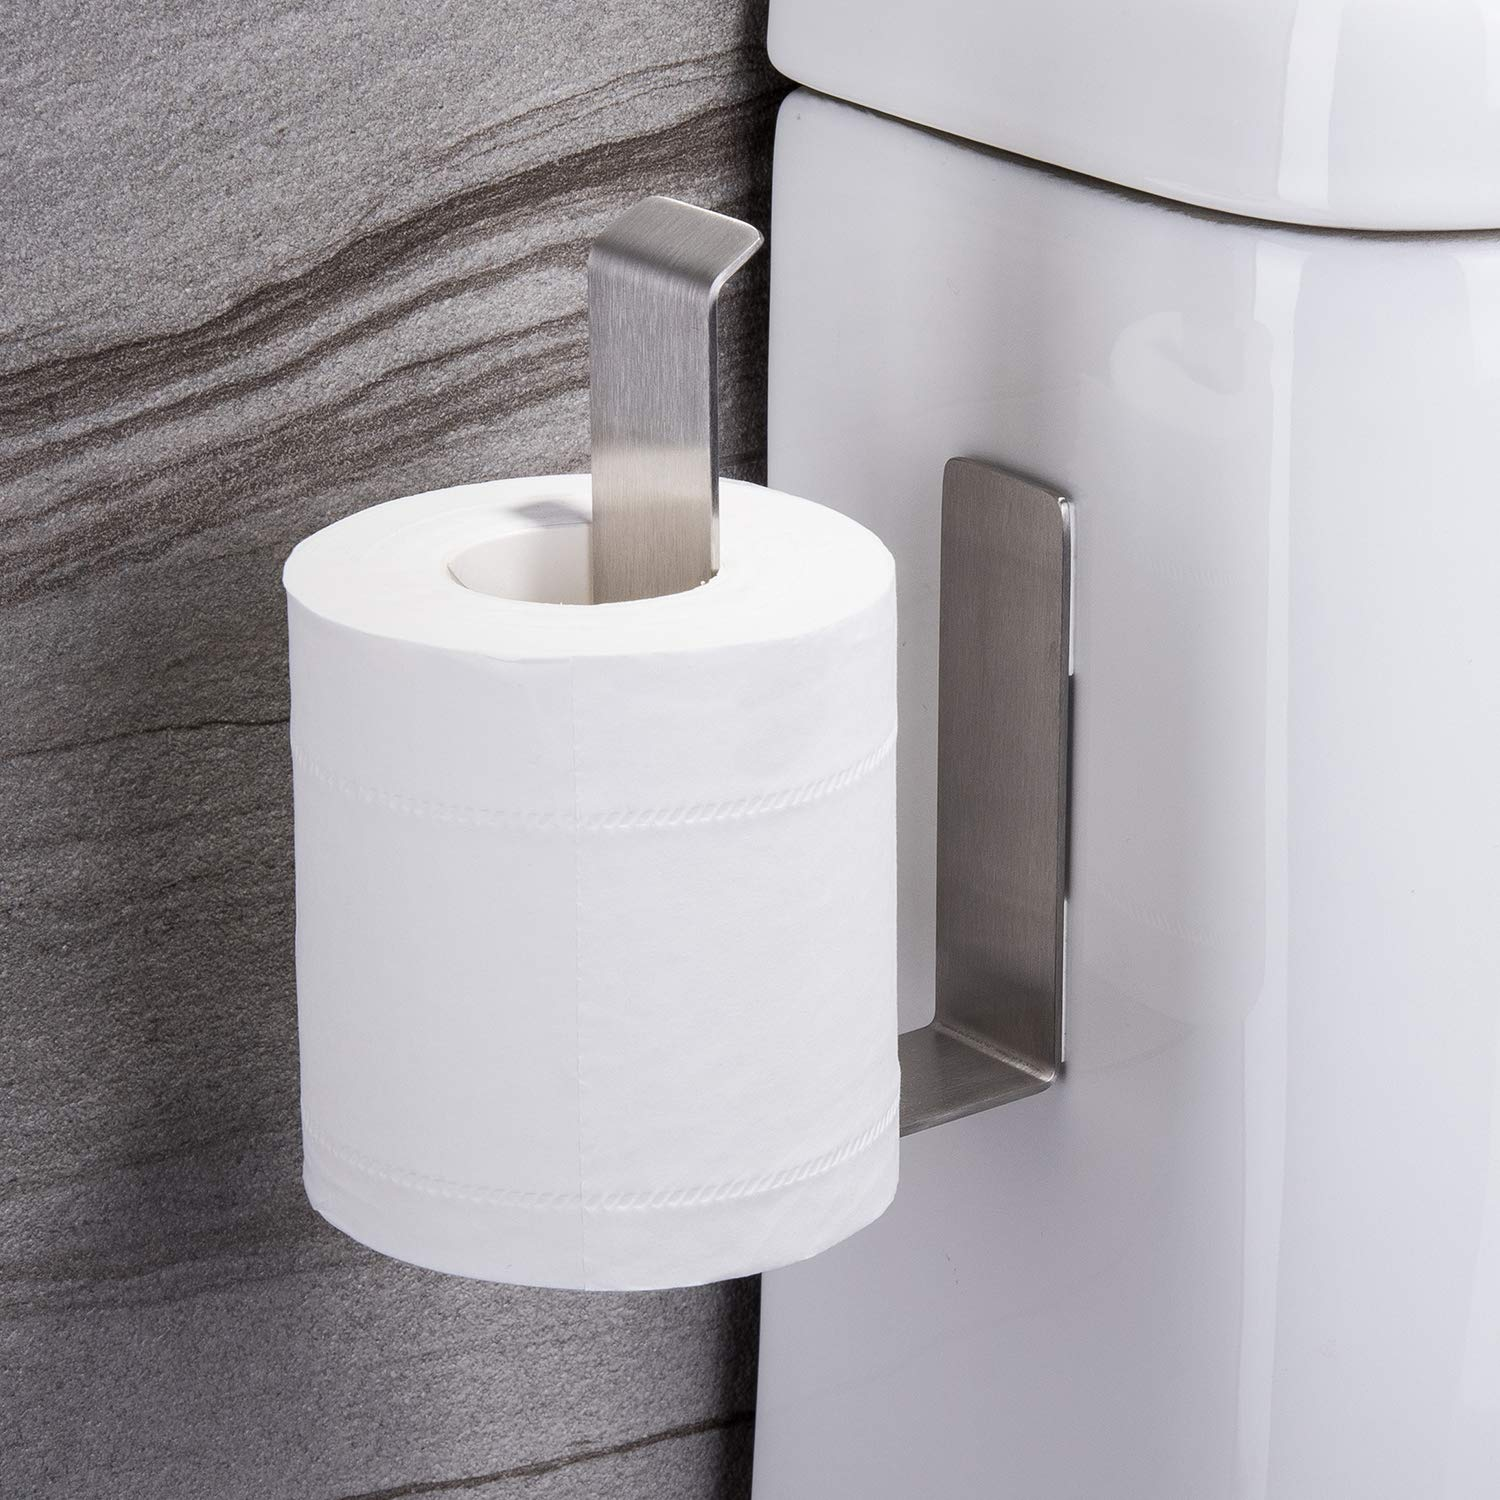 Taozun Adhesive Toilet Paper Holder - Self Adhesive Toilet Paper Rack Toilet Paper Roll Holder Stick on Wall, No Drilling Stainless Steel by Taozun